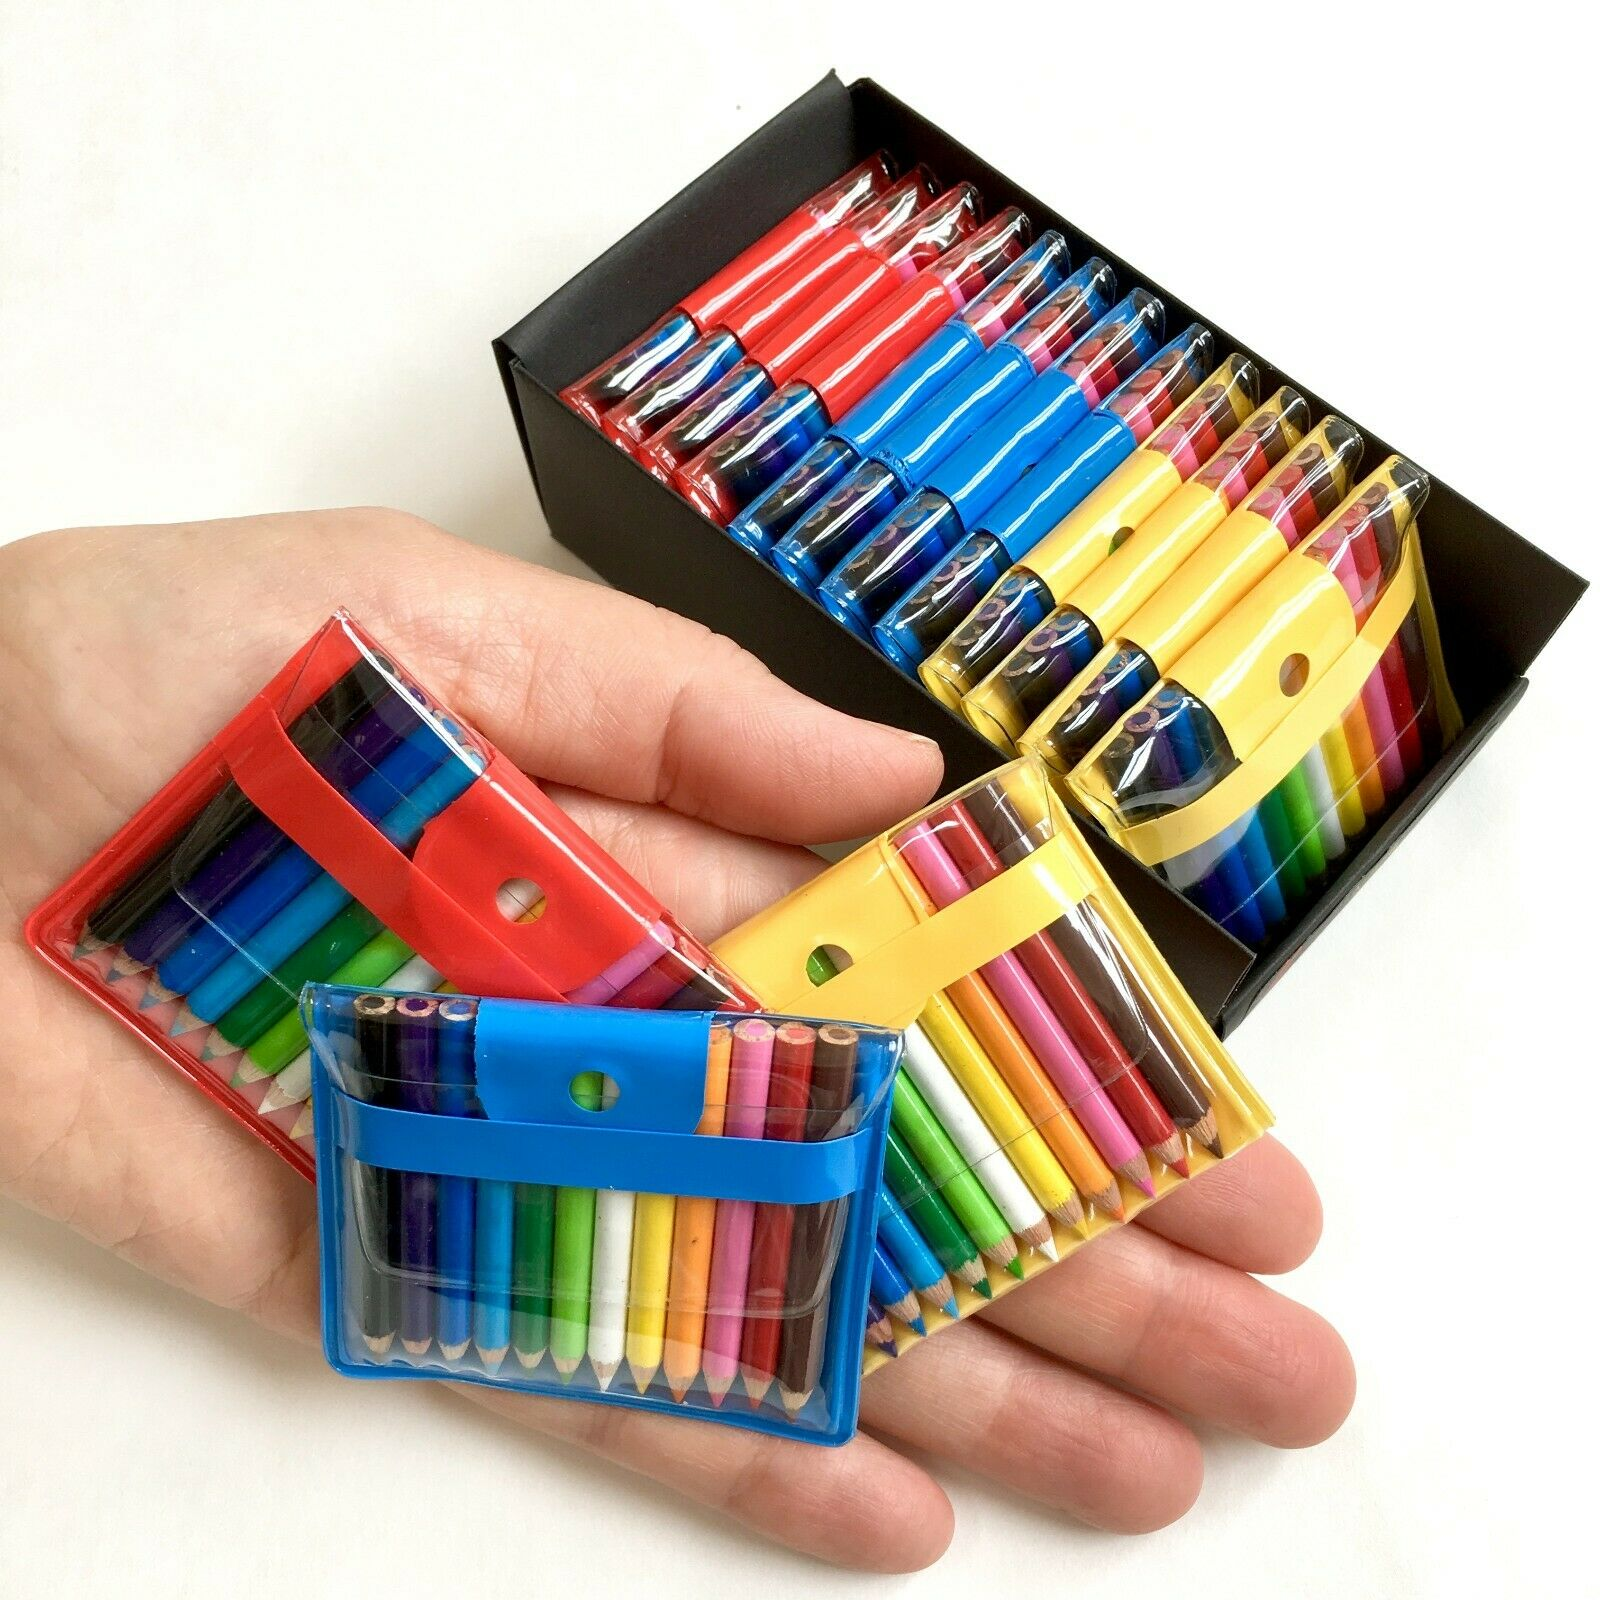 Be-Goody 12 Japanese Miniature Colored Pencils in Pouch-RED-ONE POUCH SET.